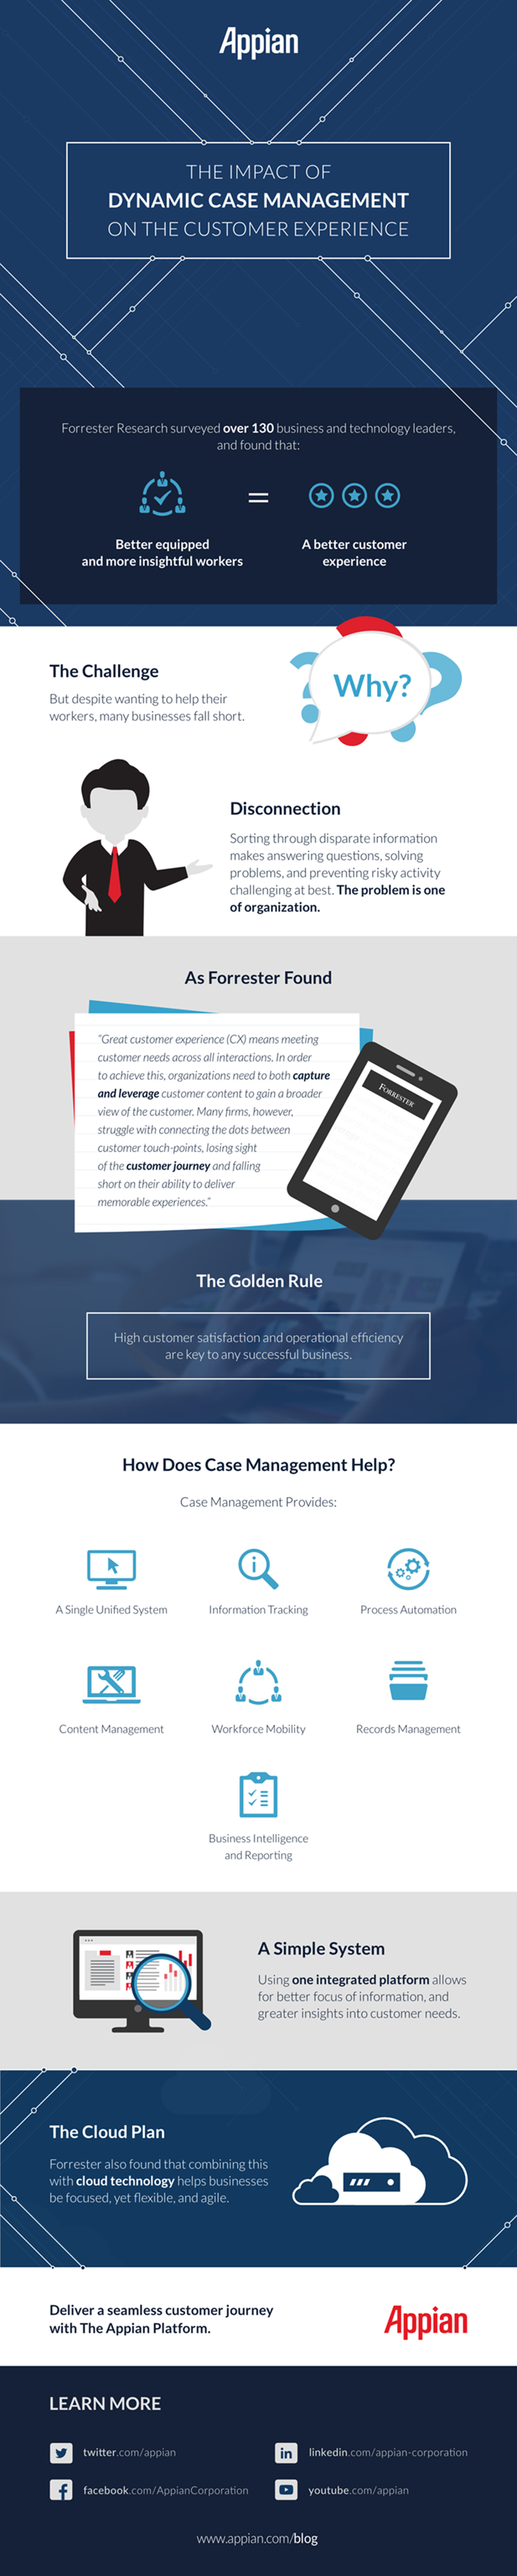 The Impact of Dynamic Case Management on the Customer Experience